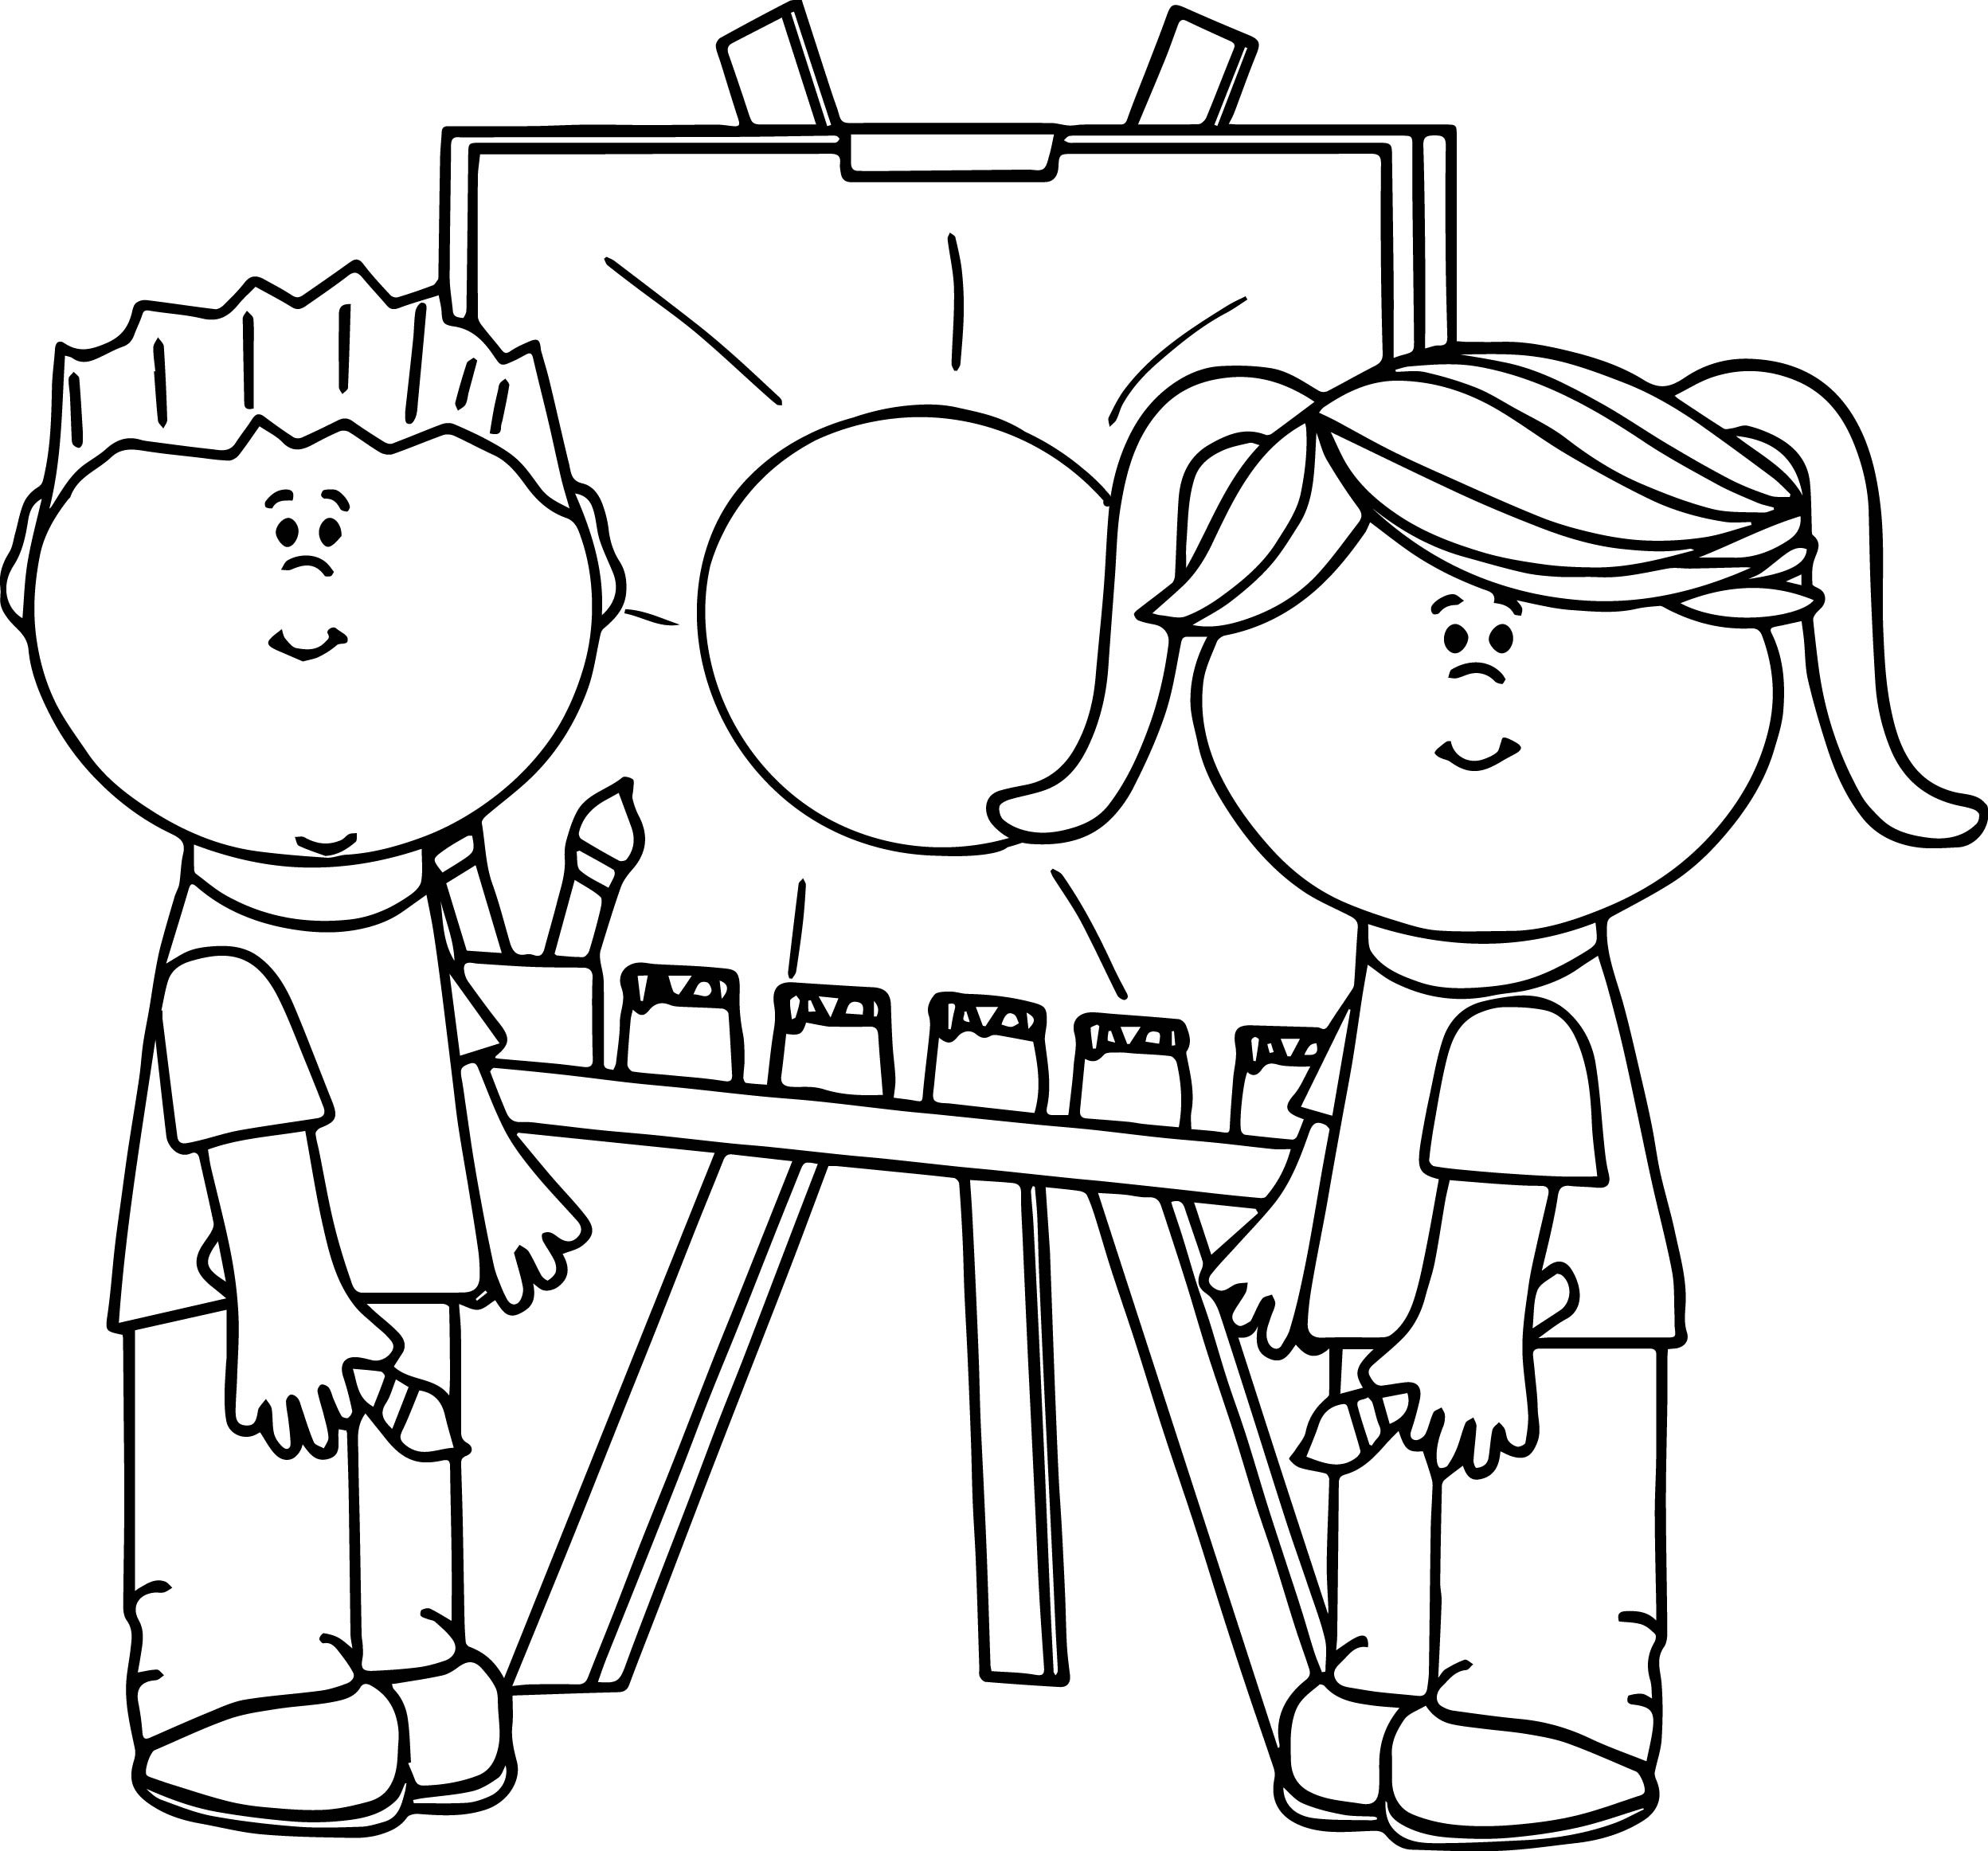 2496x2324 Noddy Paining Coloring Pages For Kids Awesome Kids Making Painting